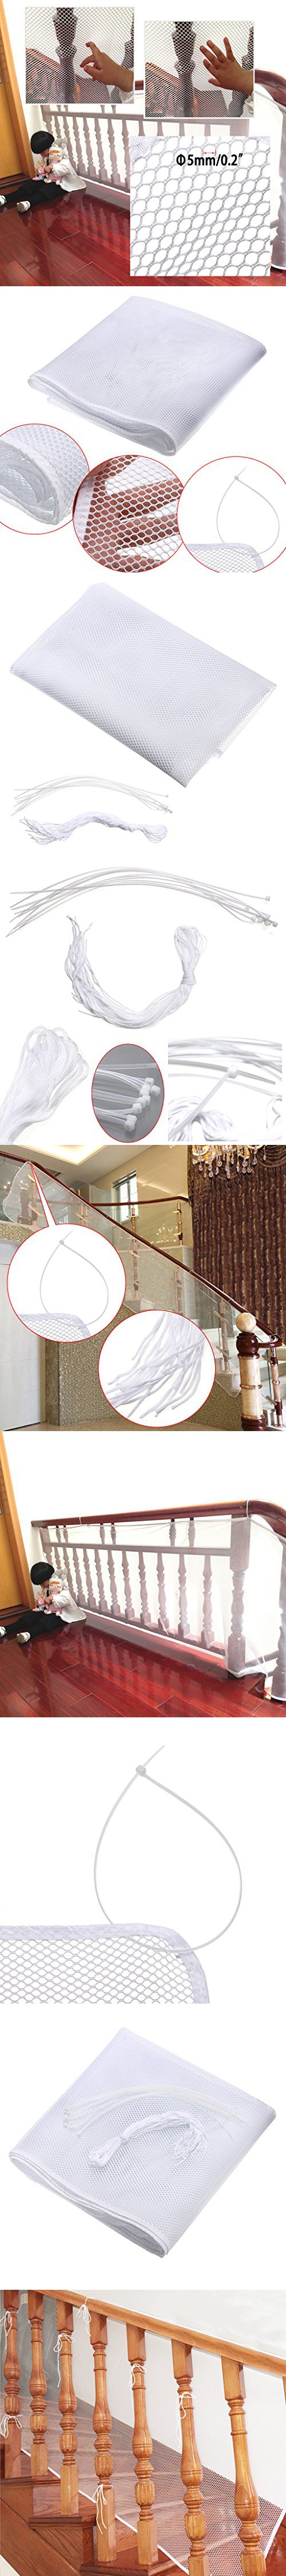 Hipiwe Safe Rail Net 10ft L X 2.5ft H Indoor Balcony And Stairway Railing  Safety